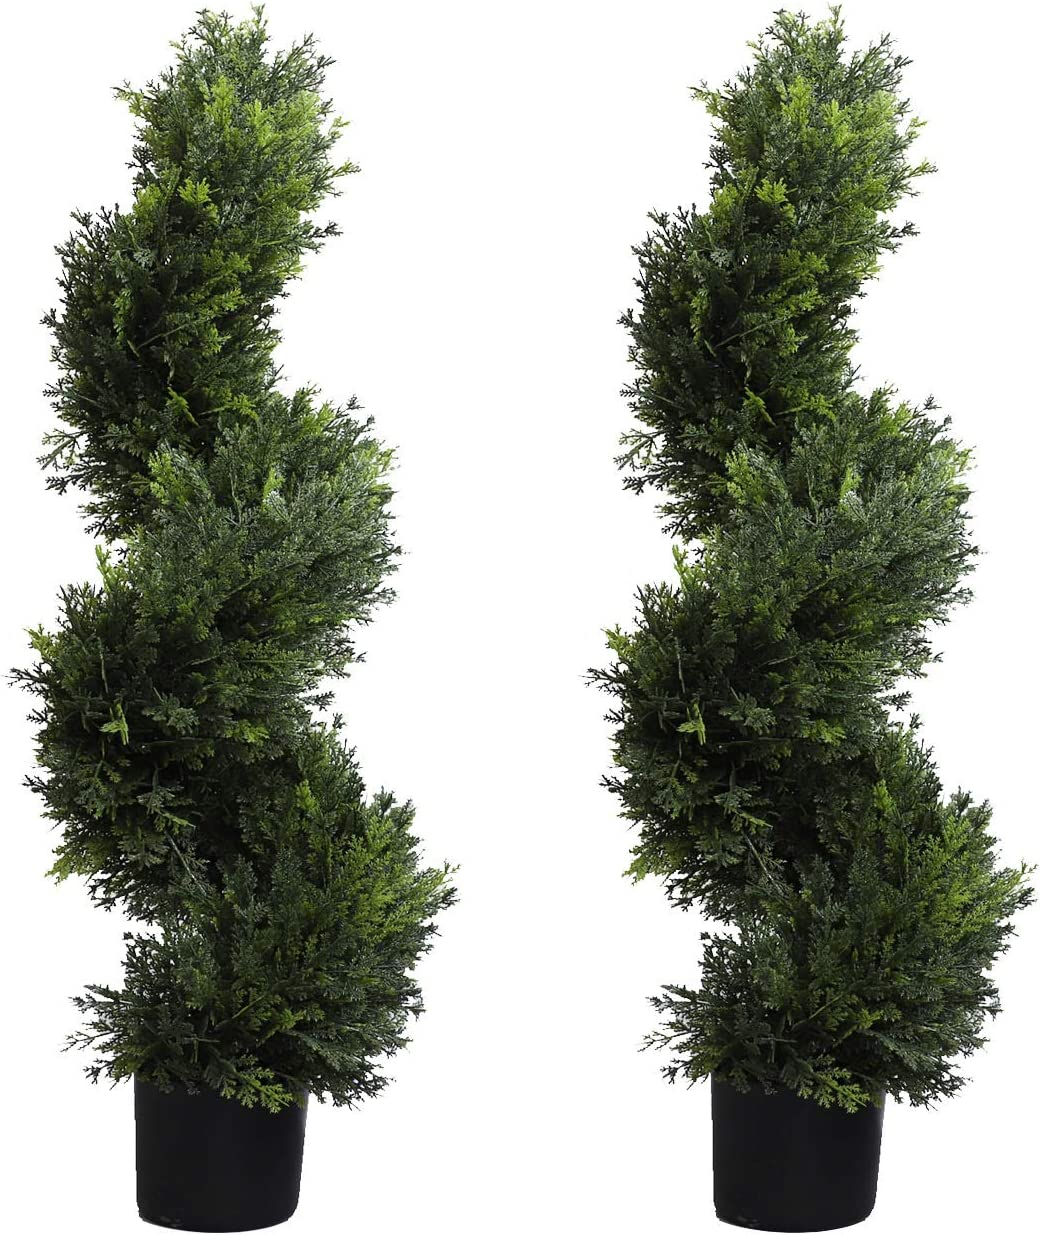 Momoplant Artificial Spiral Trees 2 Set Of 3 Ft 90cm Topiary Cypress Plants For Outdoor And Indoor Decor With Black Pot Amazon Co Uk Kitchen Home